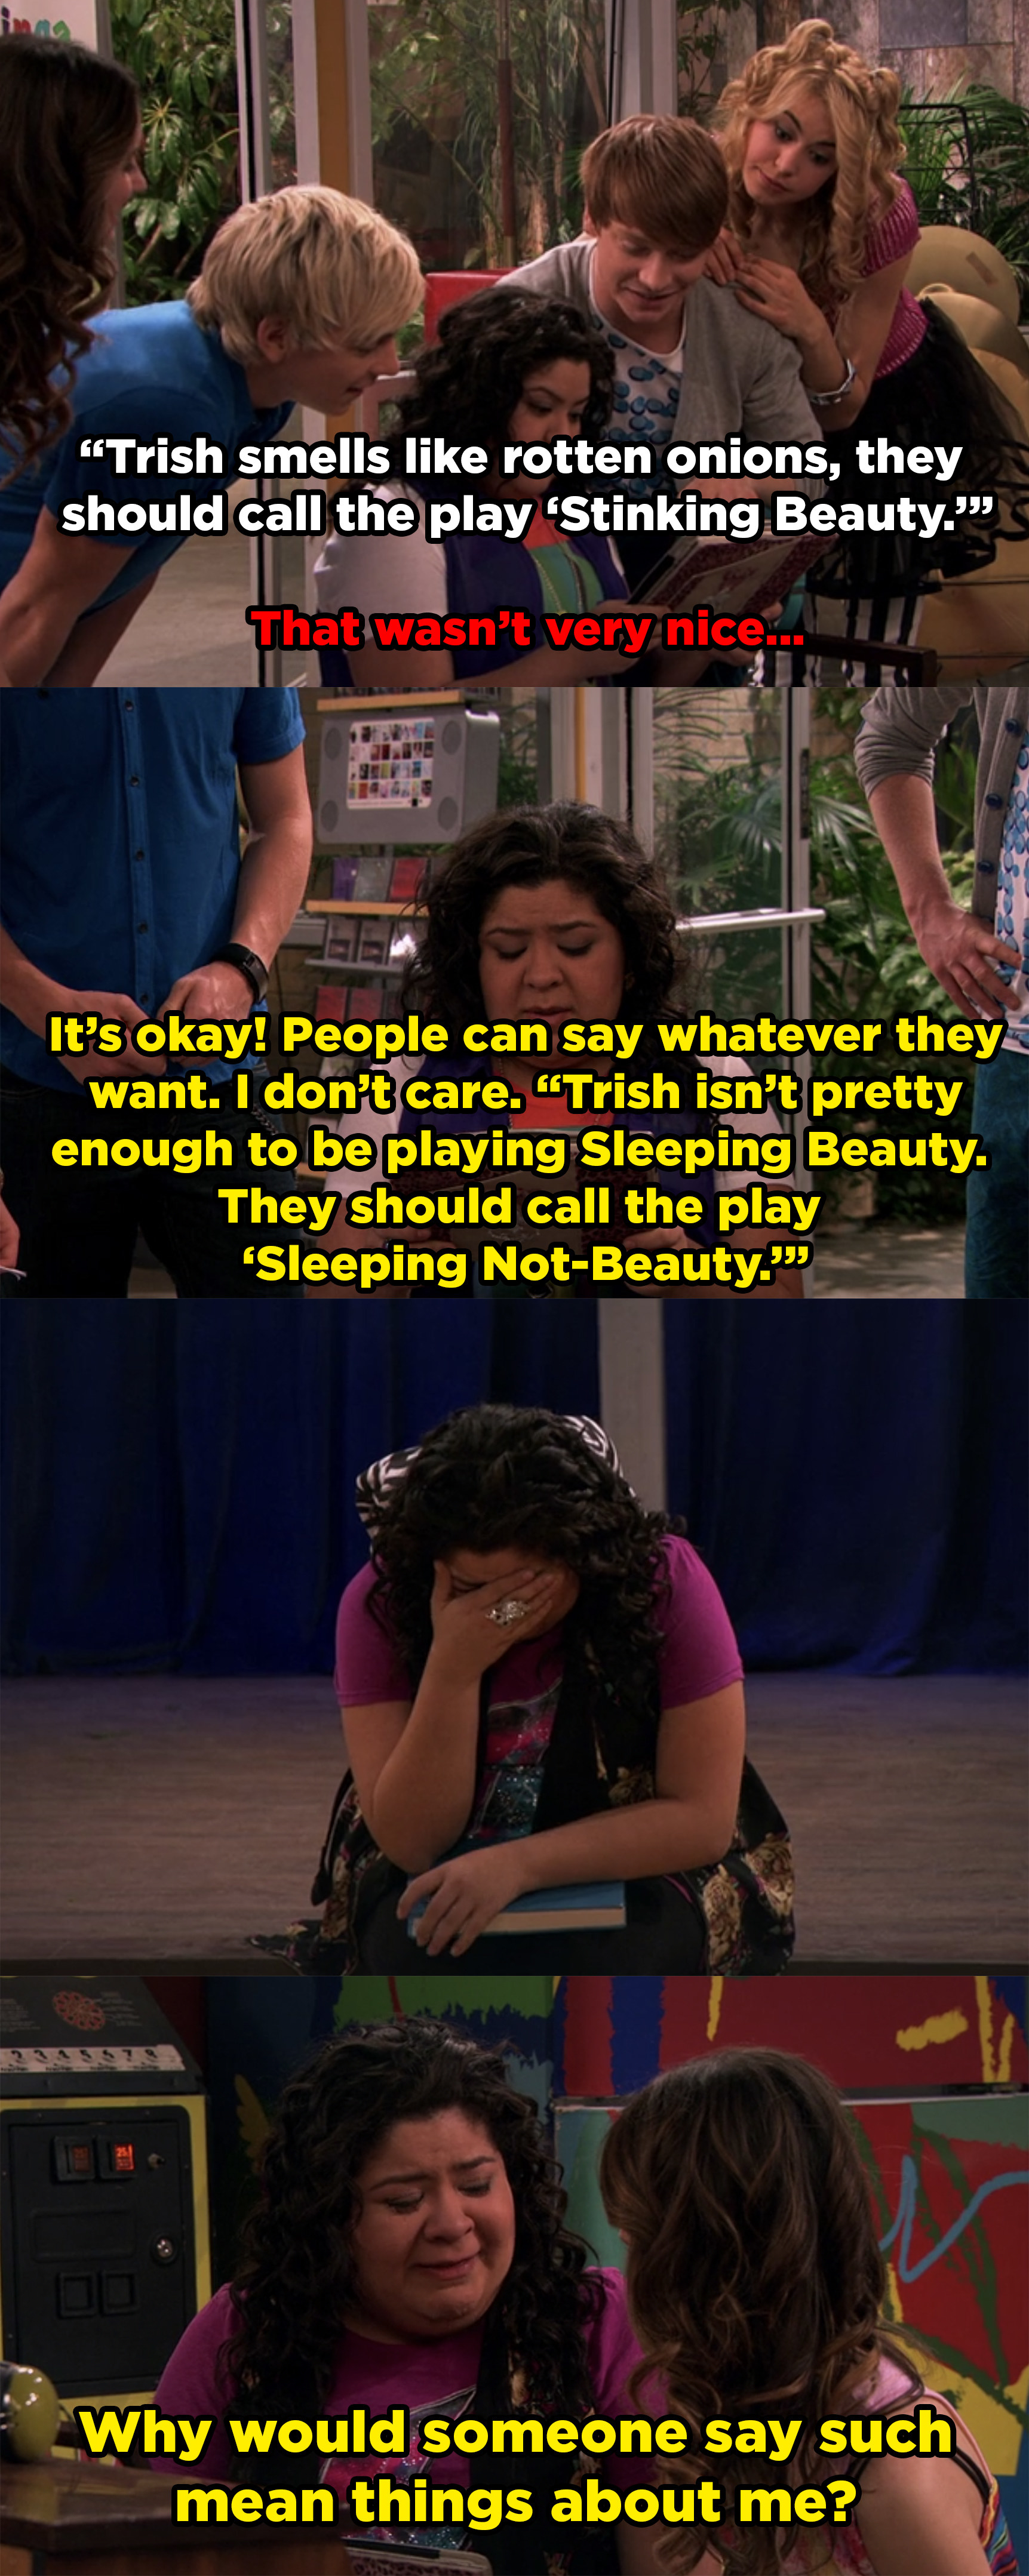 Internet comments say that Trish is ugly and she smells and then she cries to Ally about it.